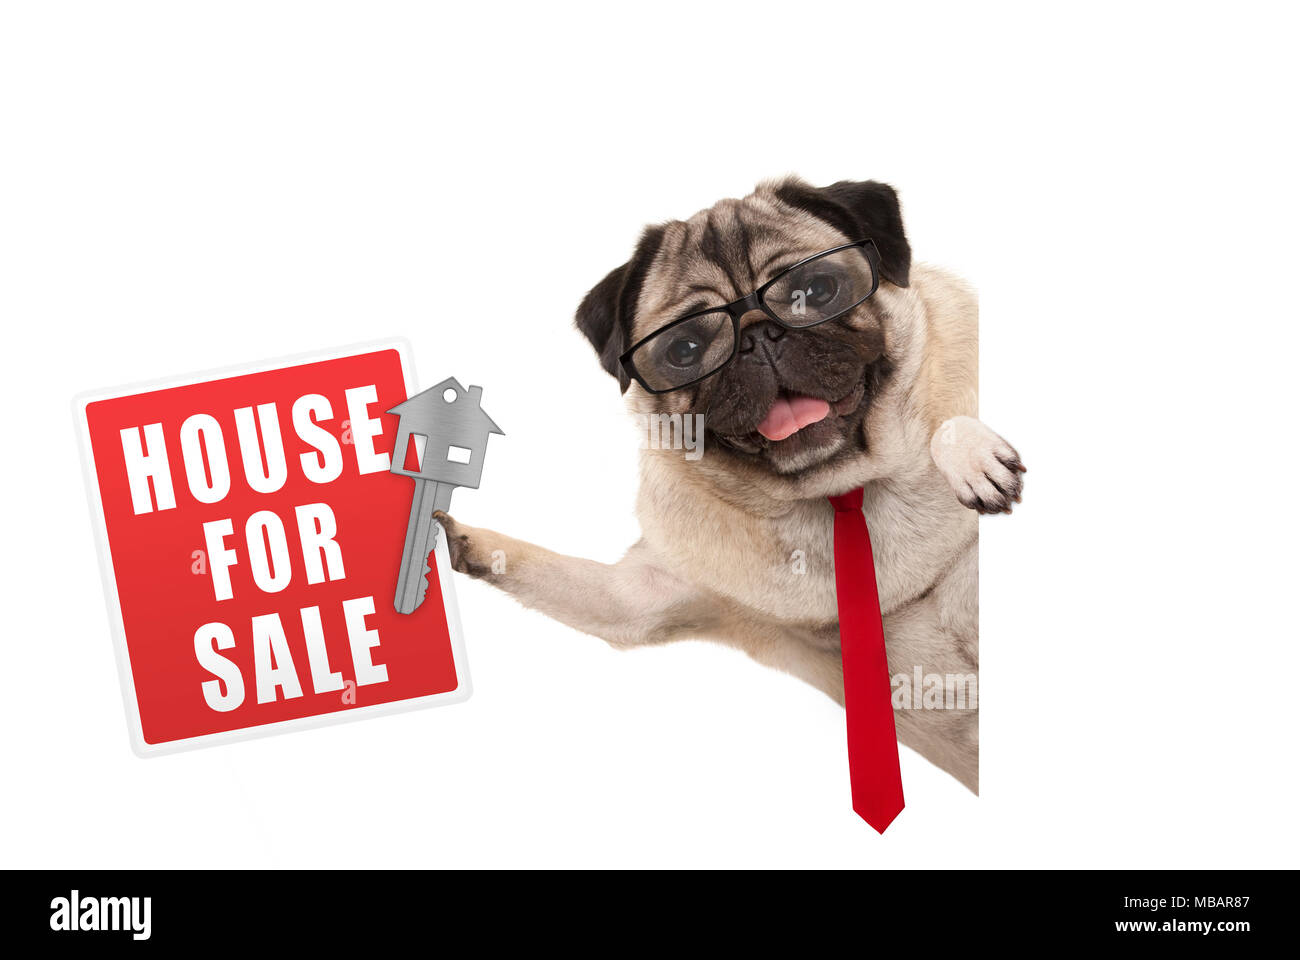 happy business pug dog witg glasses and tie, holding up red house for sale sign and key, isolated on white background - Stock Image